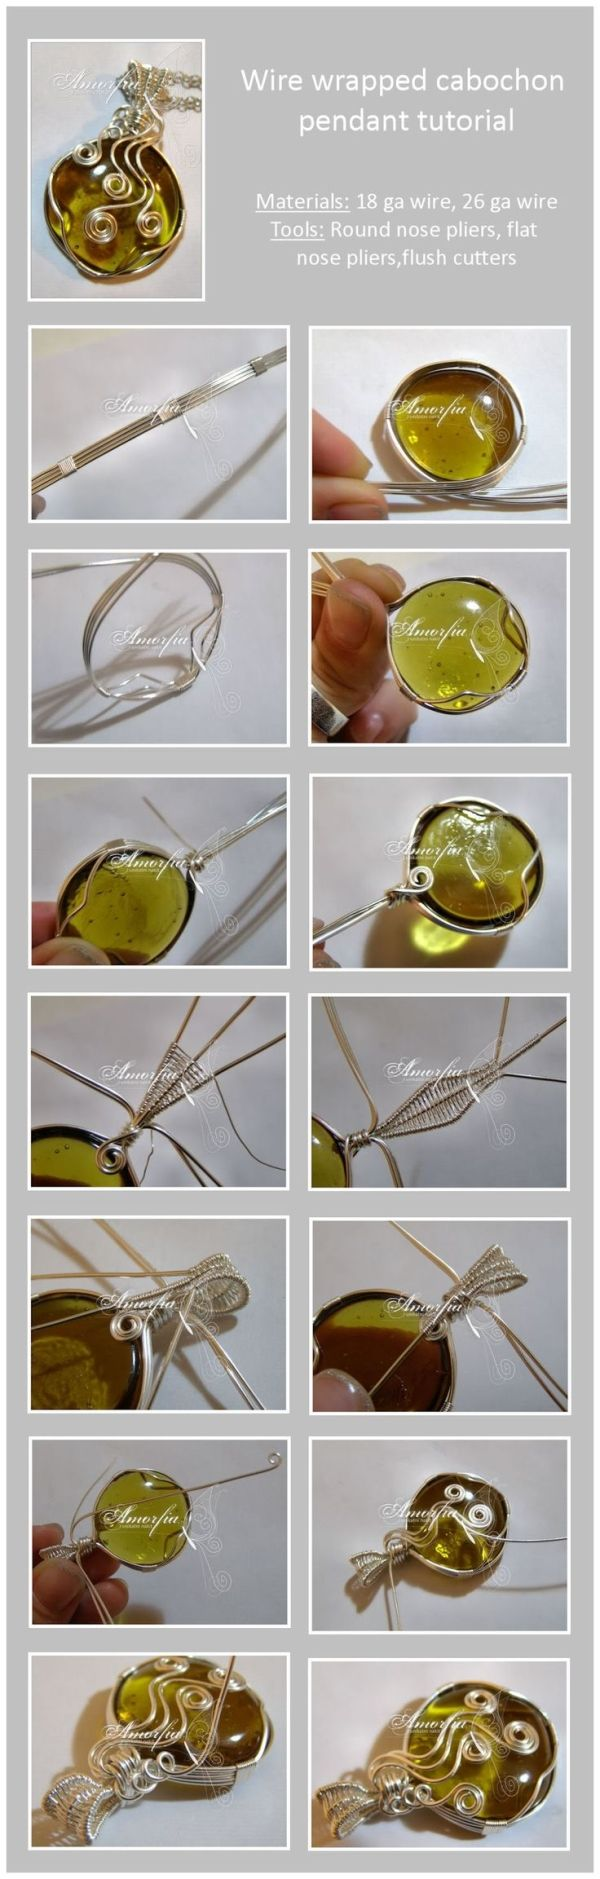 106 best Wire wrapping and weaving images on Pinterest   Wire ...